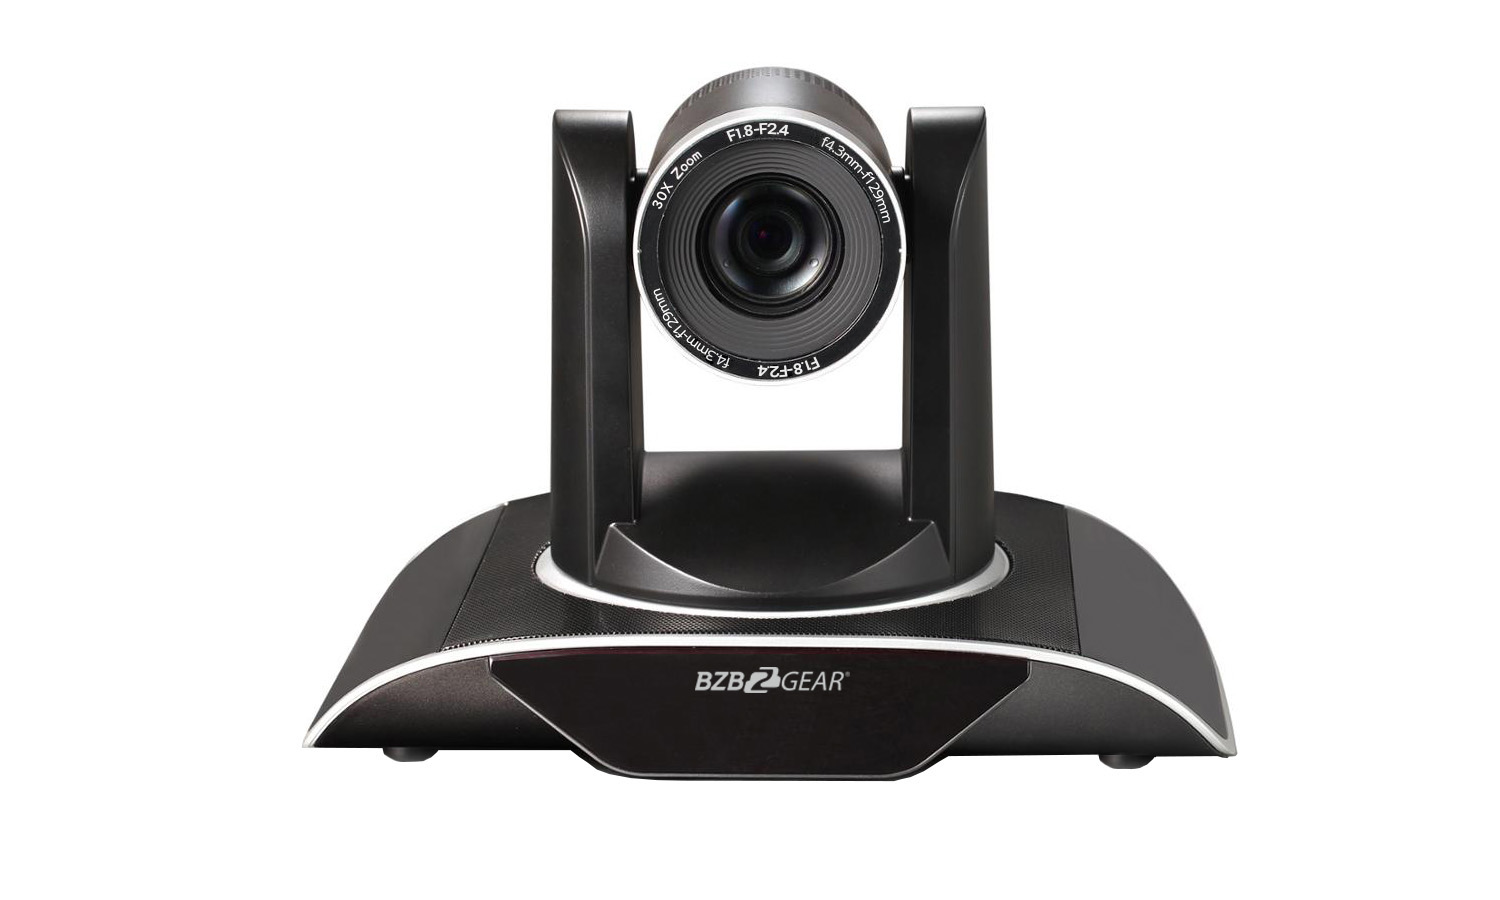 BG-BPTZ-30XHUDR PTZ 30X Zoom Full HD USB3.0 RS232 Live Streaming Camera by BZBGEAR